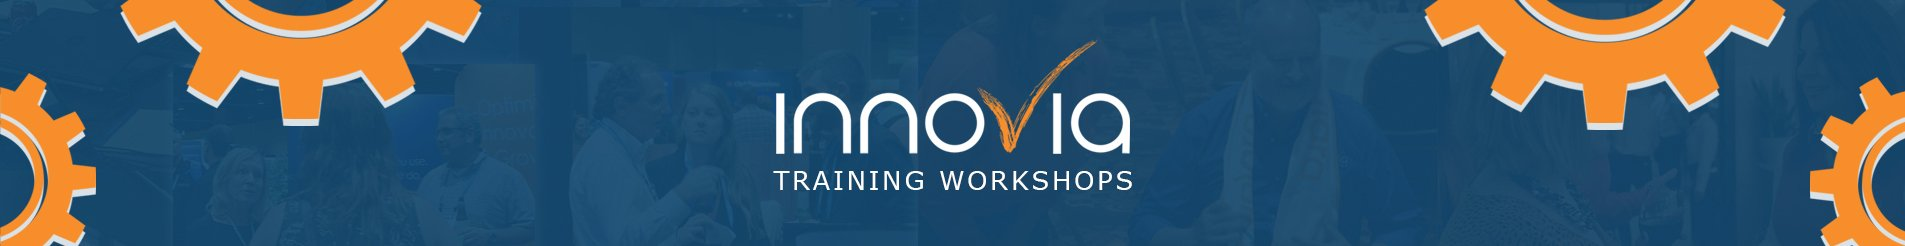 Training Workshops Website Header